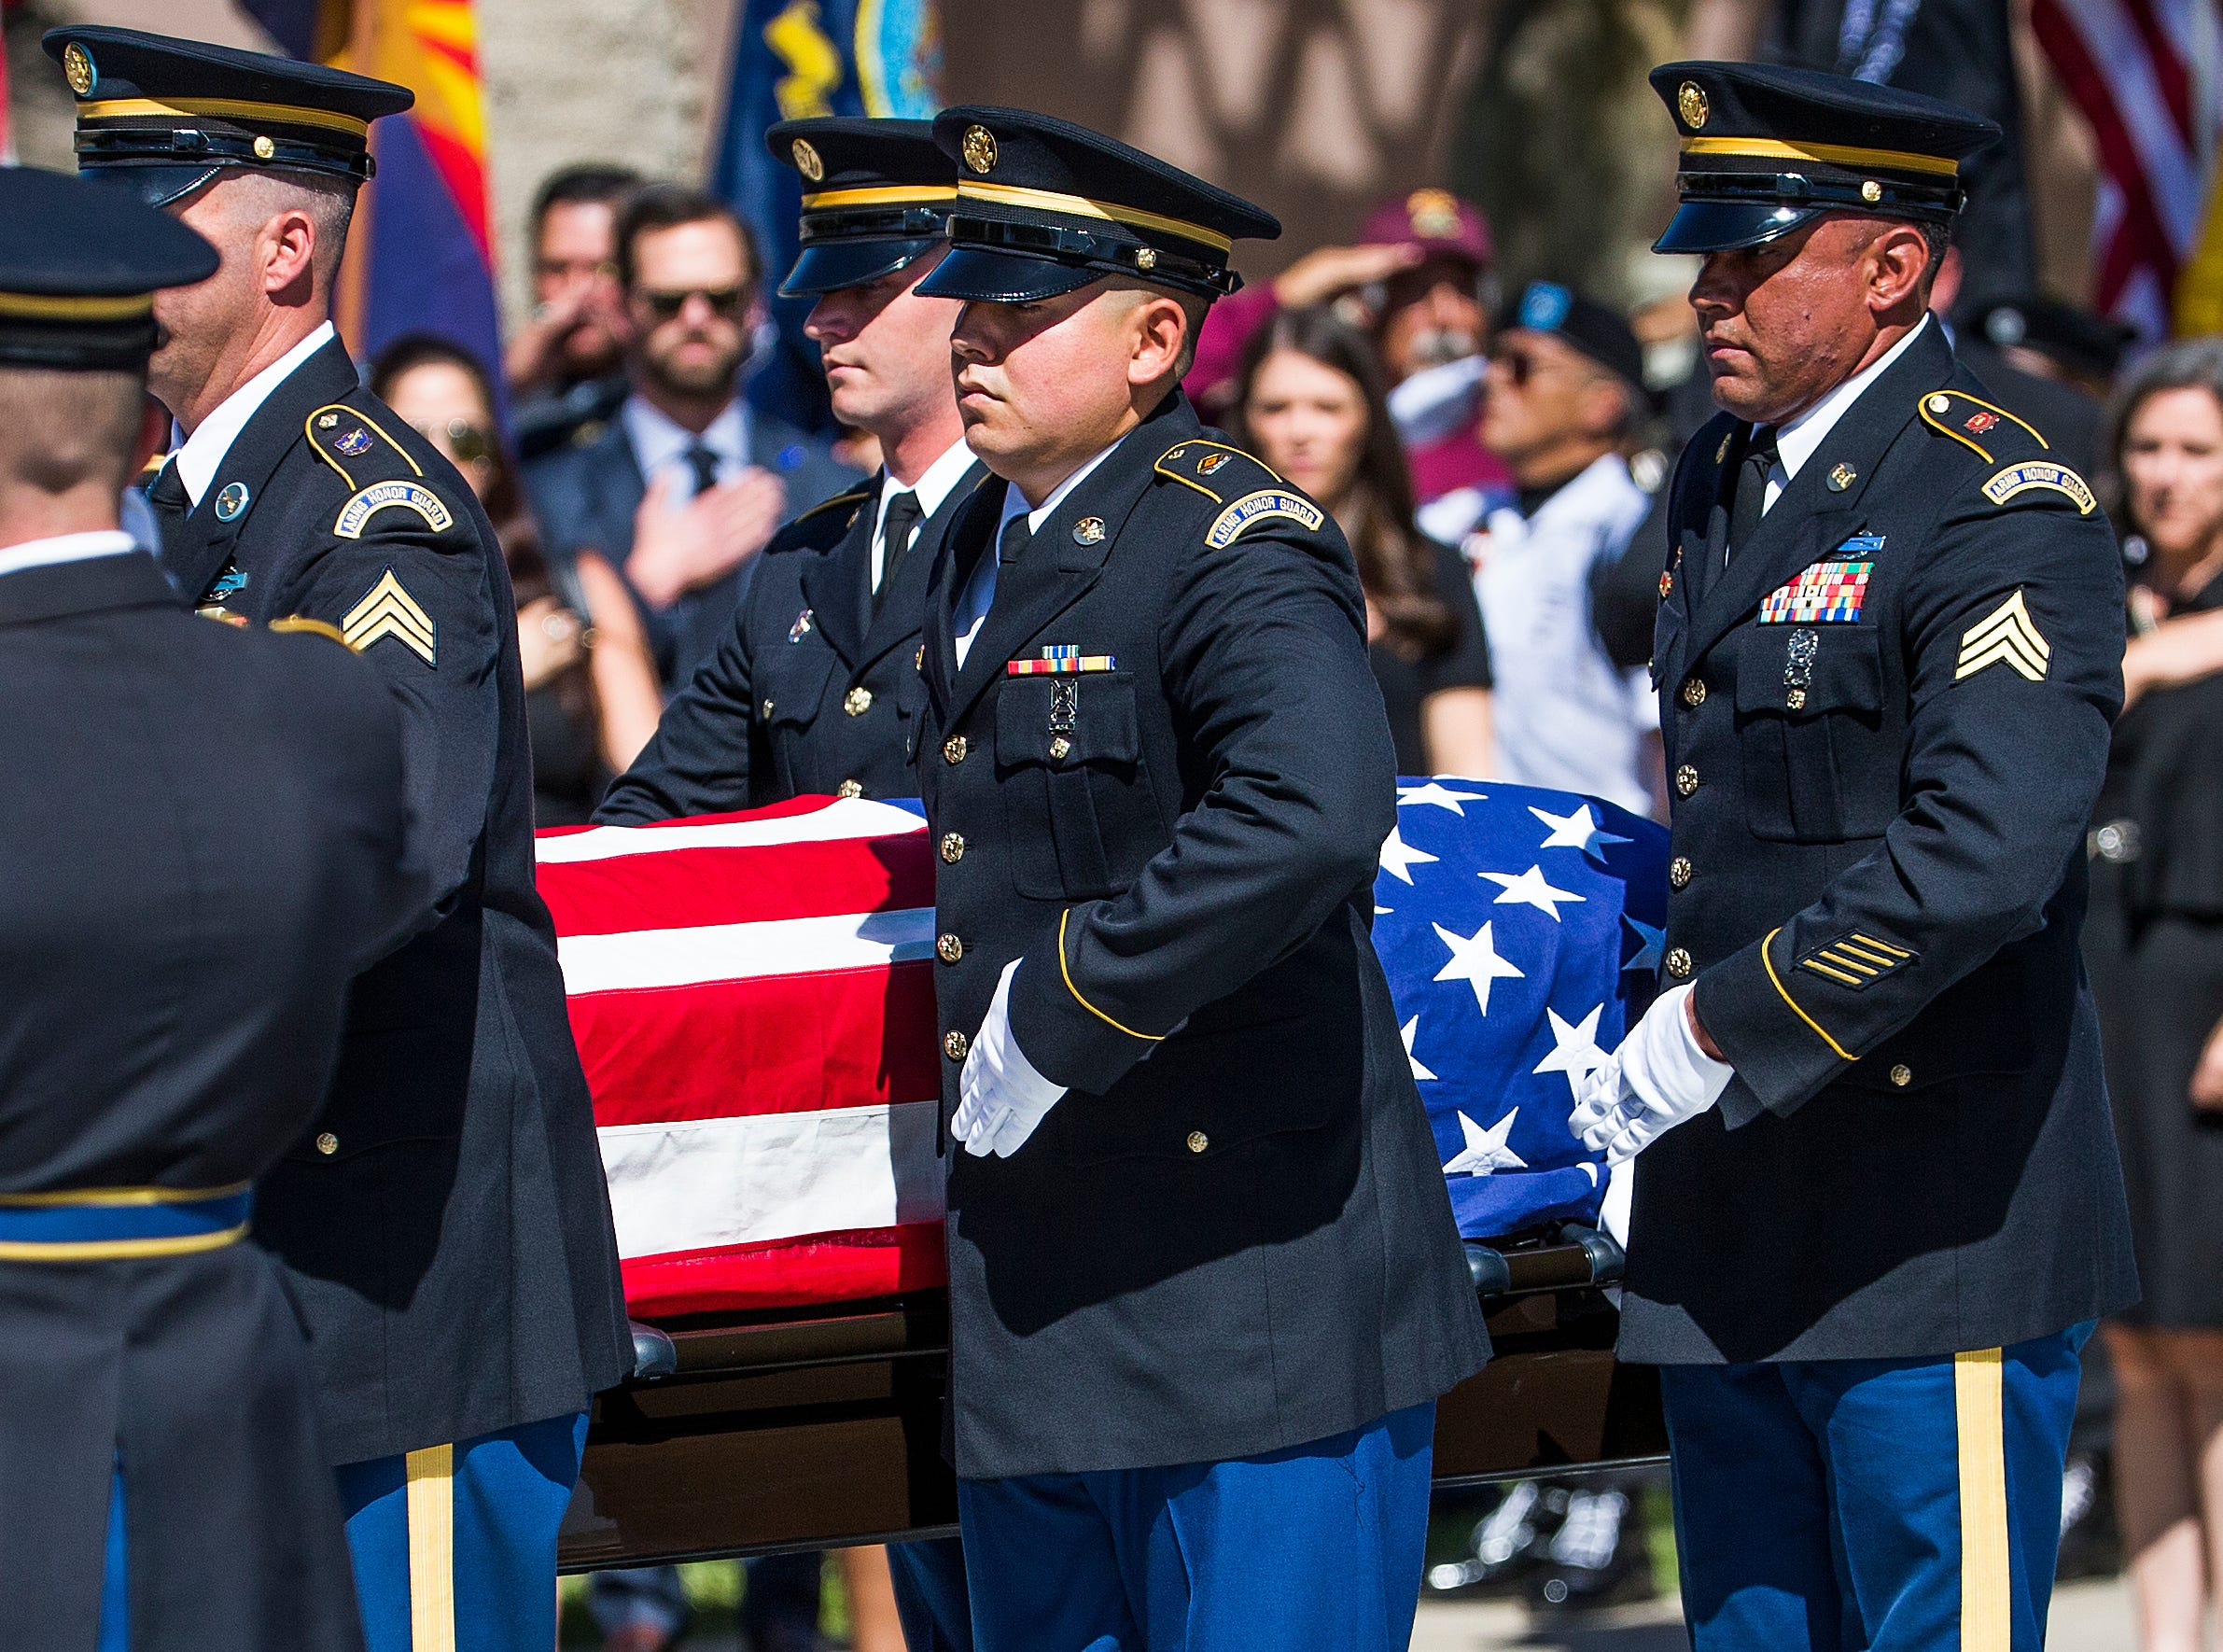 The casket is taken from the hearse with the body of Sen. John McCain after arriving at the Capitol in Phoenix Wednesday morning, August 29, 2018, for a memorial service. McCain's body will lie in state in the rotunda for the public to pay their final respects.